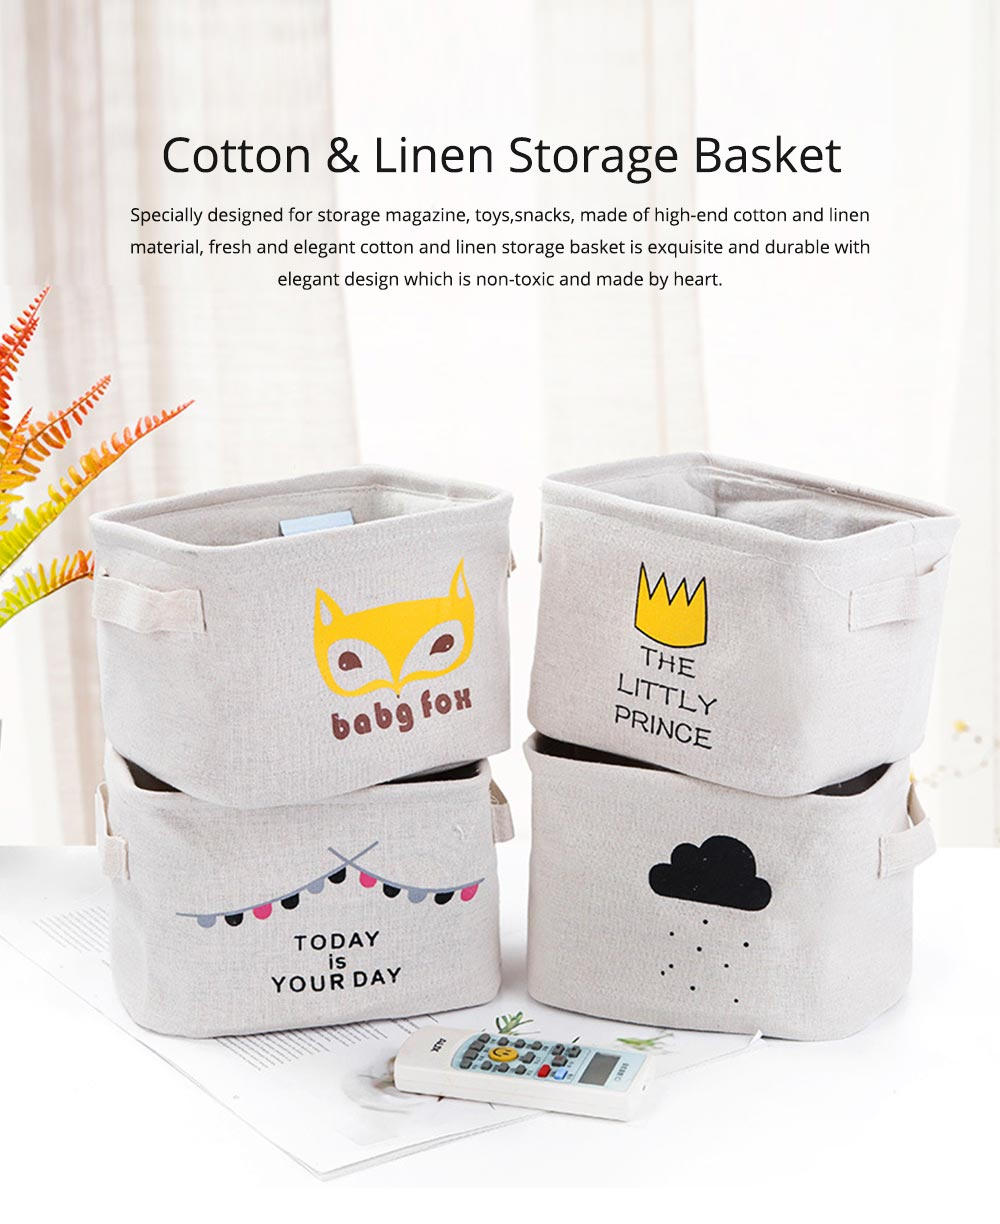 Cartoon Cotton & Linen Household Bedroom Storage Box Storage Basket with Double Handle for Magazine, Toys, Snacks 0